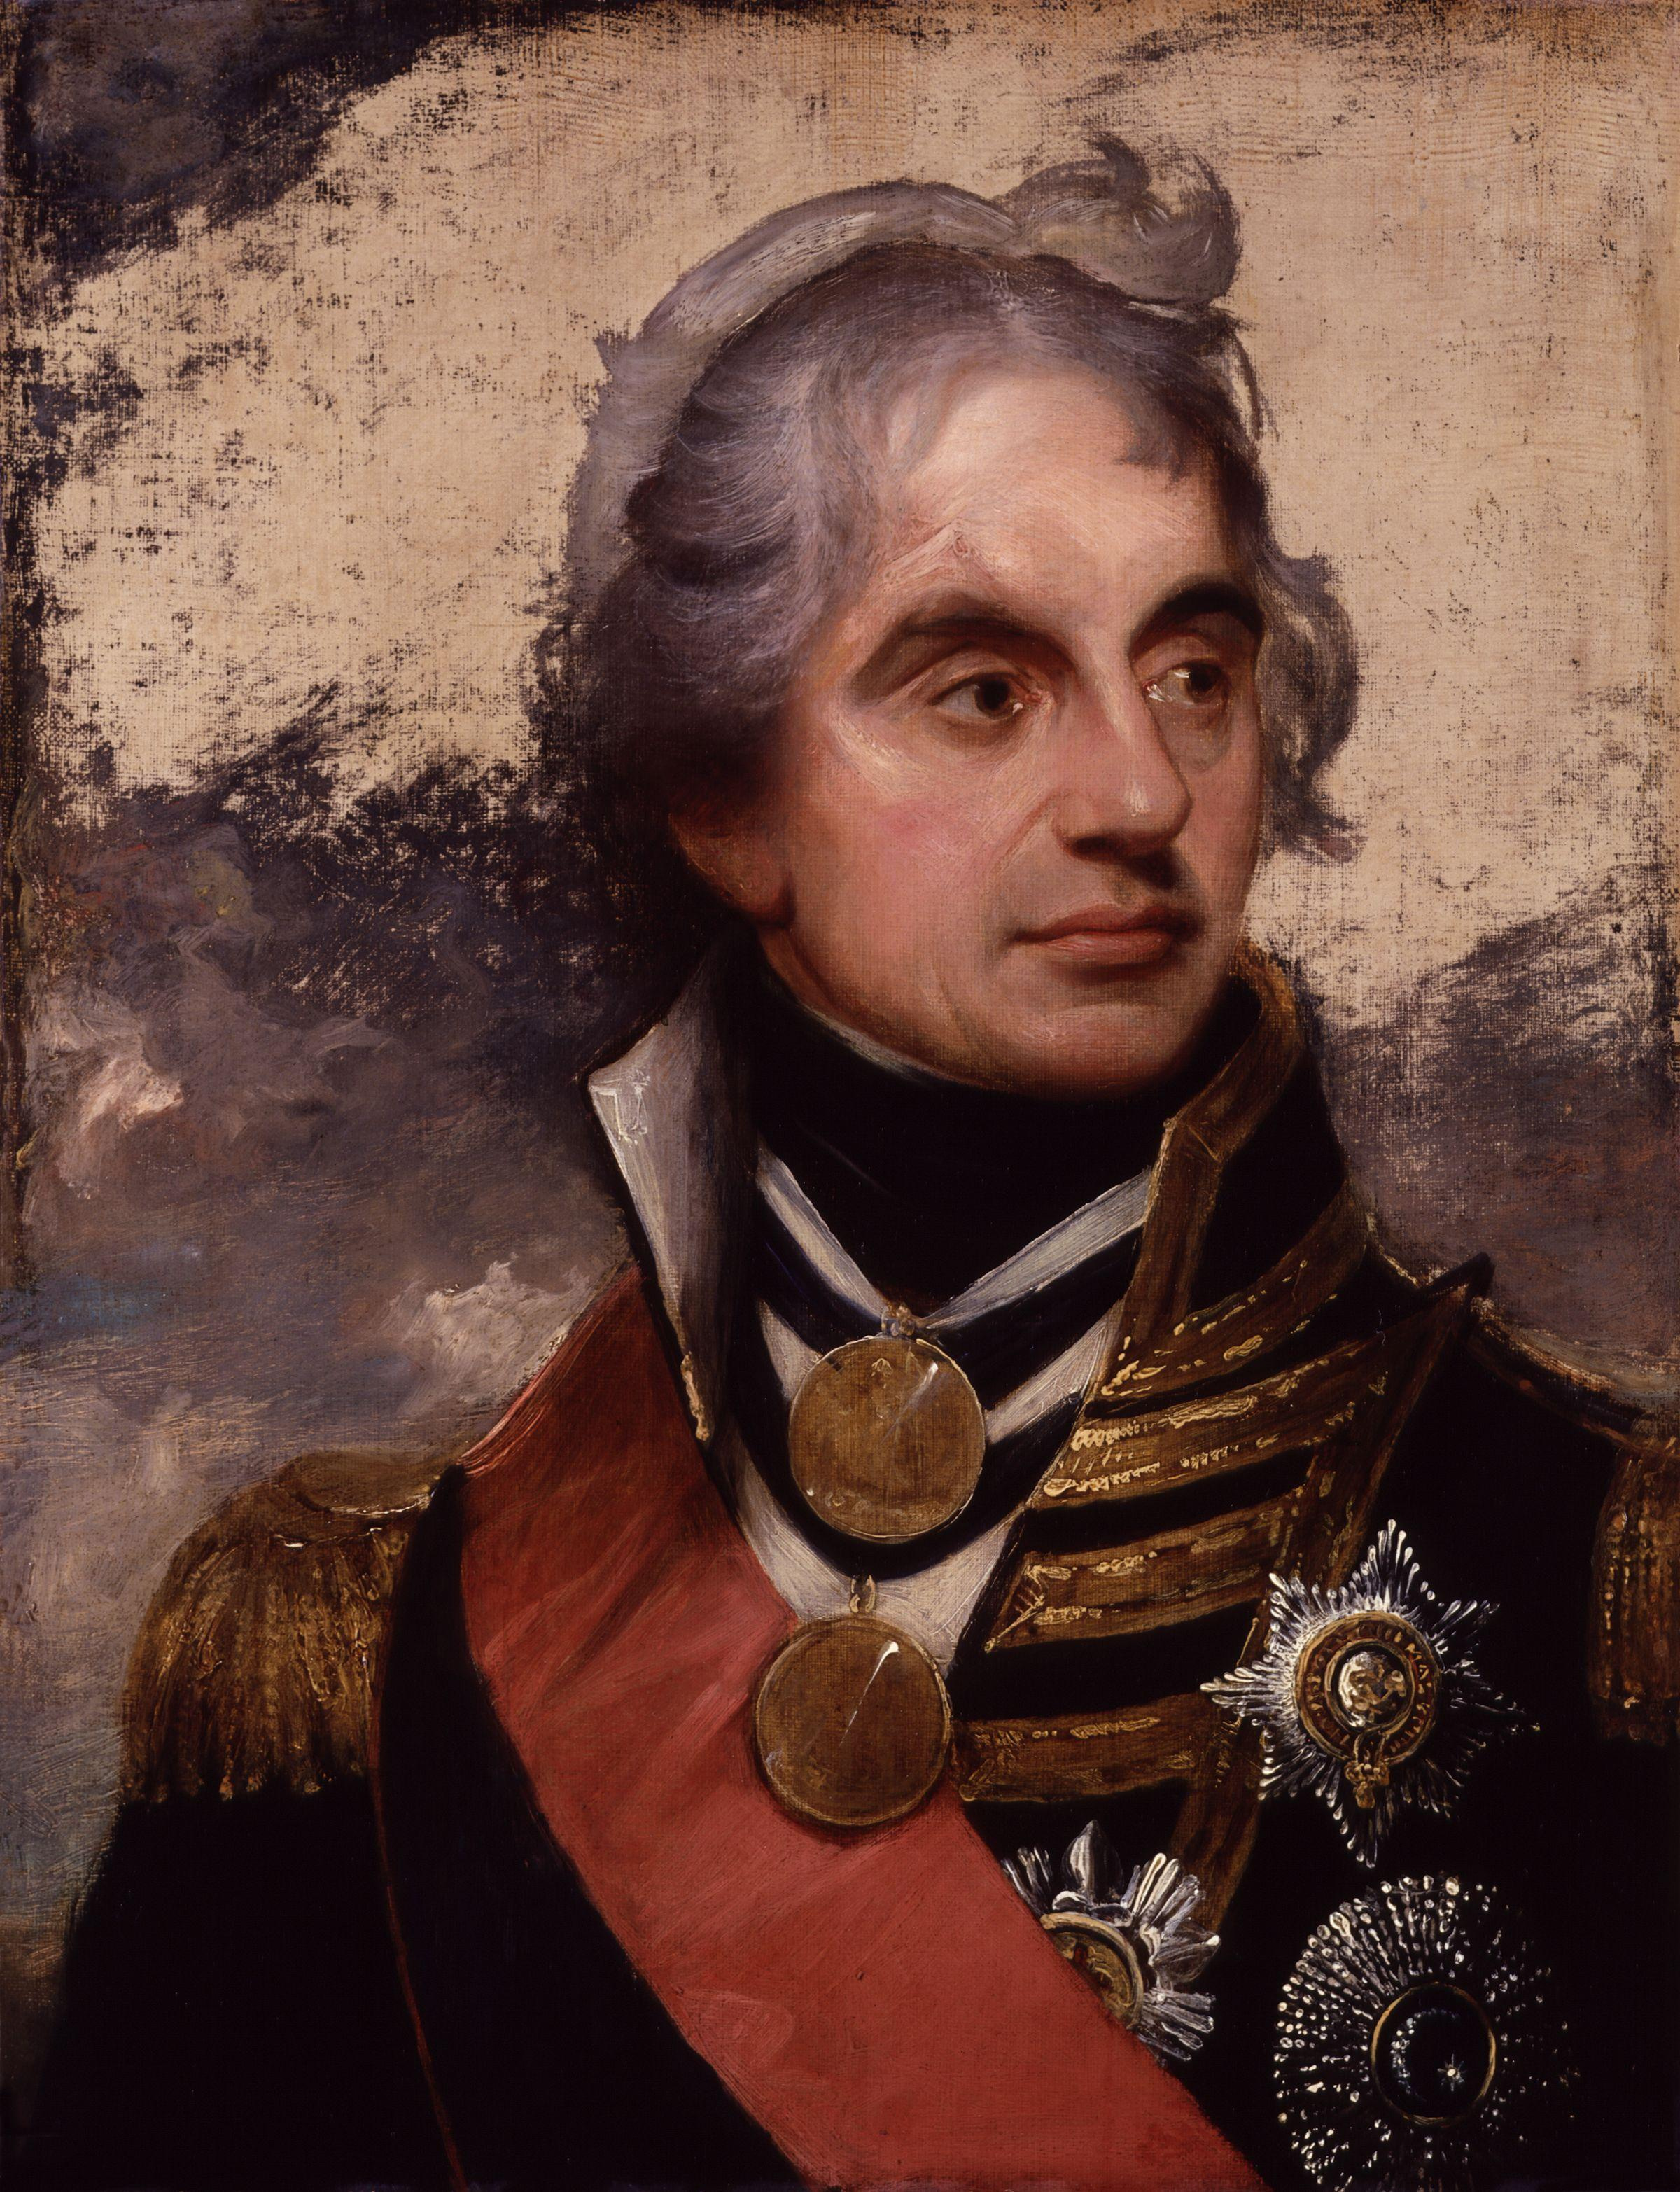 horatio nelson The hero of trafalgar - britain's most famous naval hero, vice admiral lord horatio nelson.